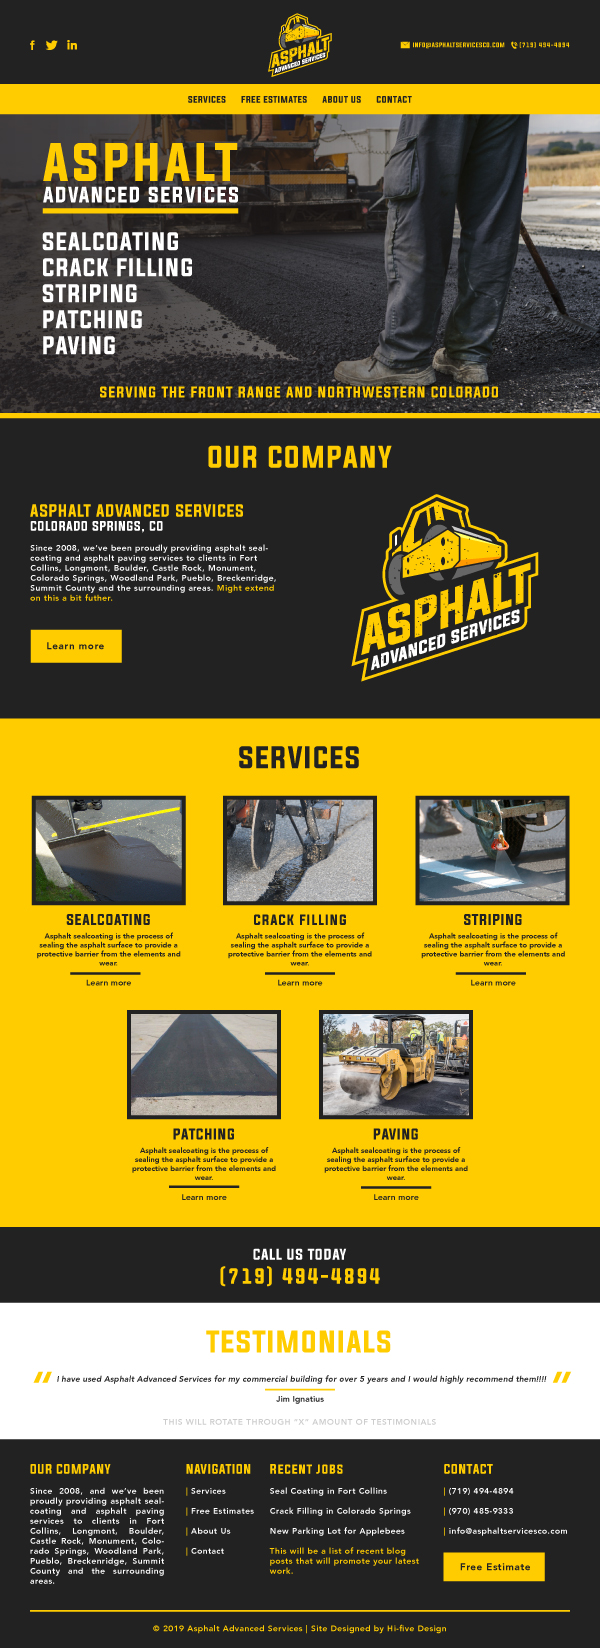 website design colorado springs, website design denver, website design pueblo, website builder colorado springs, website builder denver, website builder pueblo, asphalt website design, asphalt website, concrete website design, concrete website, construction website design, construction website builder